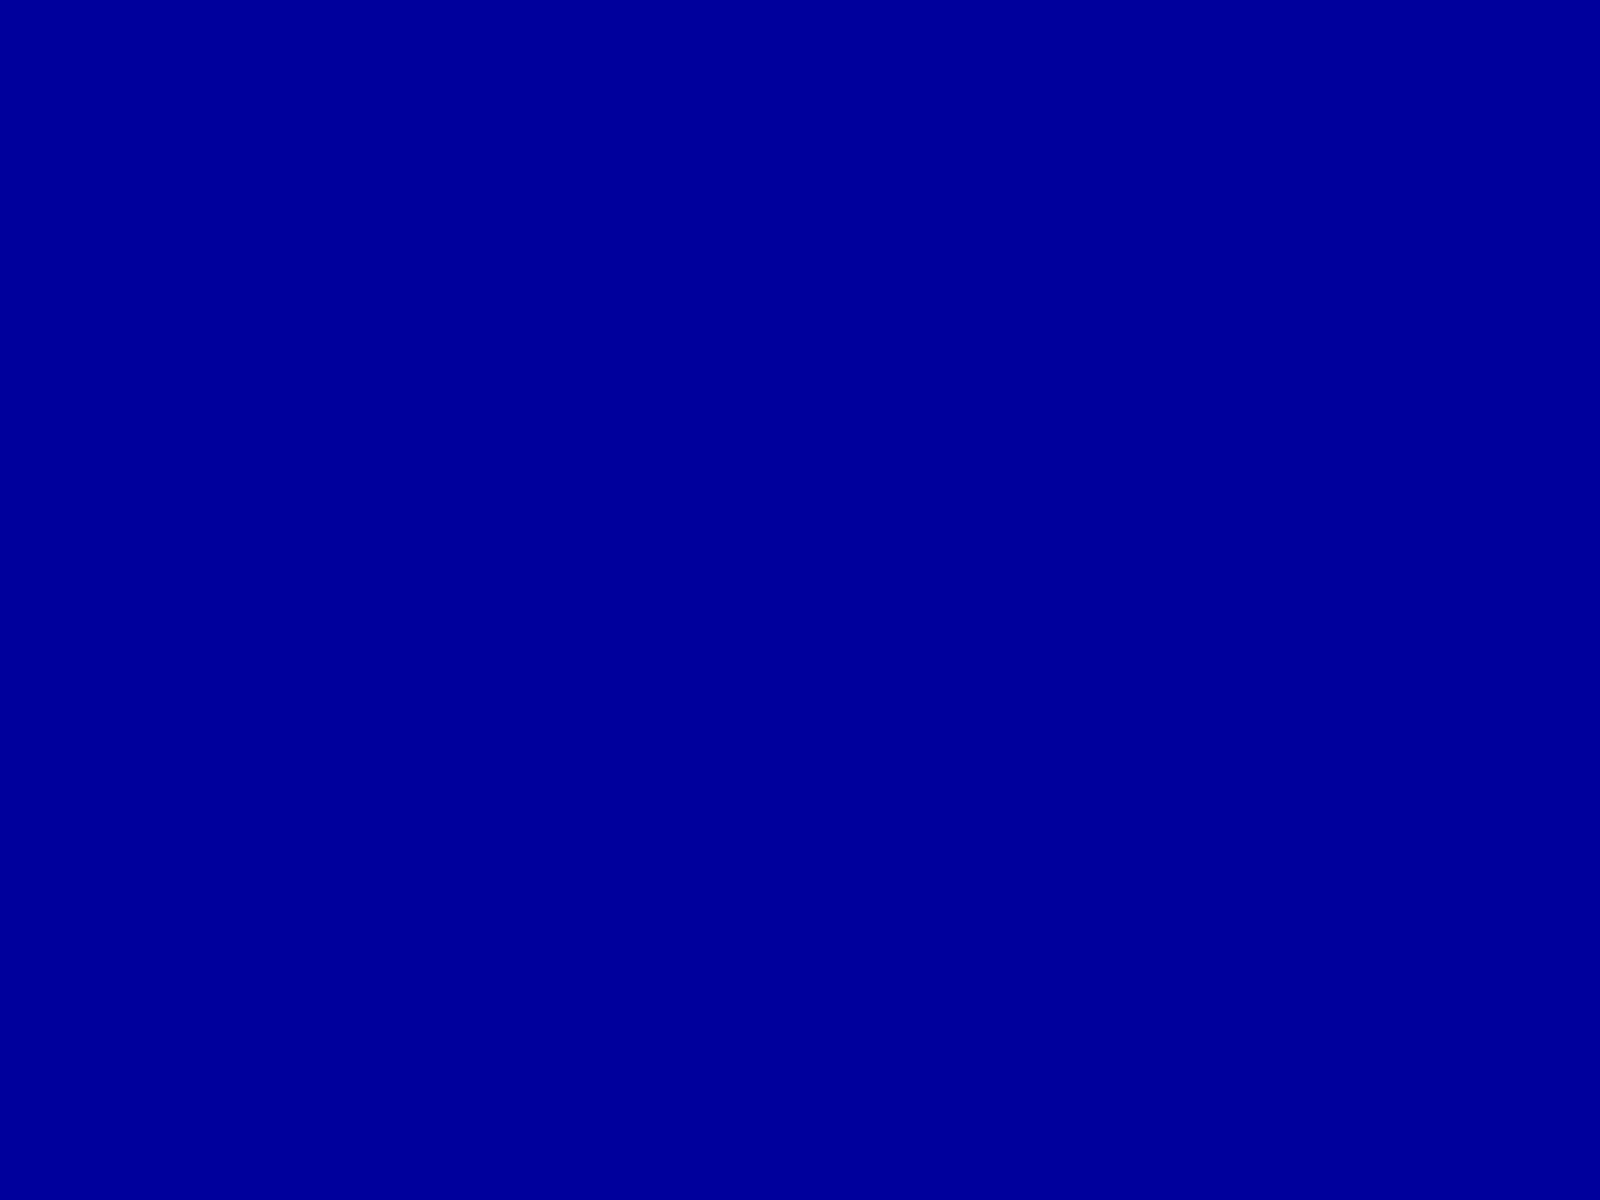 1600x1200 Duke Blue Solid Color Background